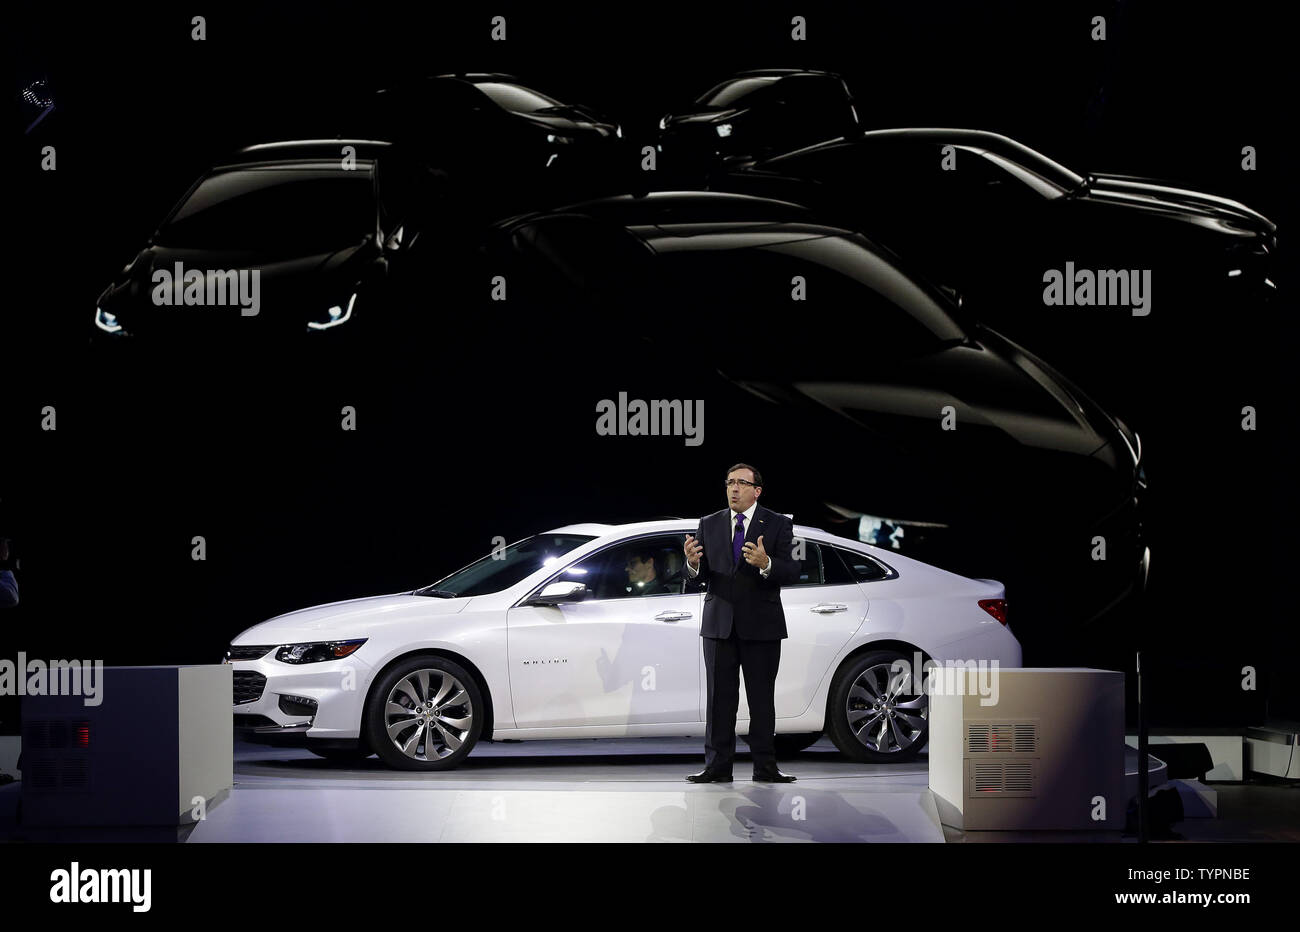 Alan Batey, President of GM North America, speaks at the unveiling of the 2016 all new Chevrolet Malibu at the 2015 New York International Auto Show in New York City on April 1, 2015. The first New York Auto Show was held in 1900 and it was the first auto show ever held in North America. About 1 million visitors are expected to attend the show.      Photo by John Angelillo/UPI - Stock Image